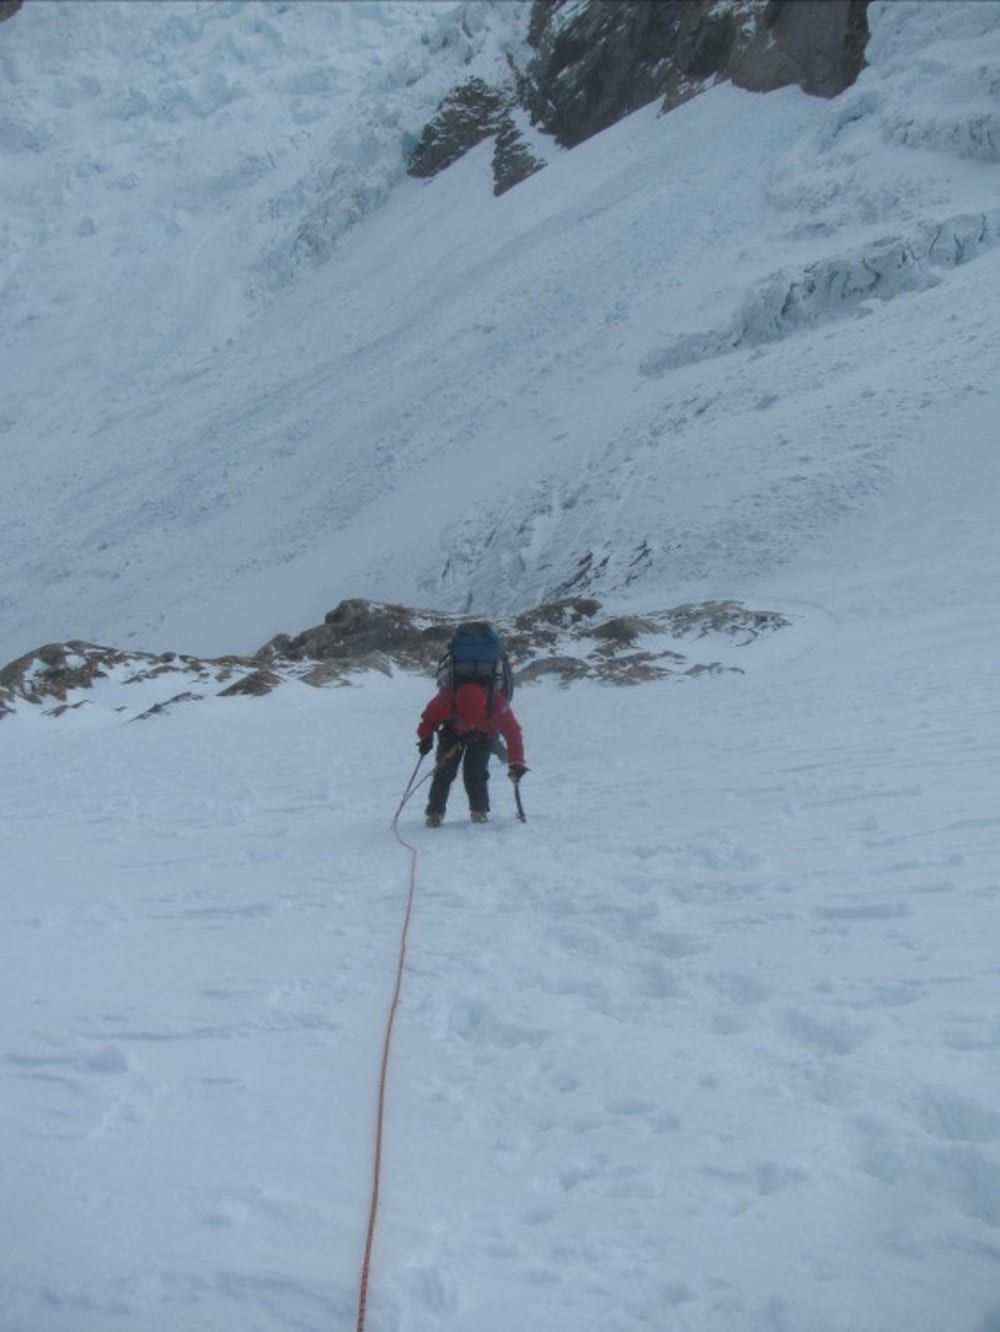 Me getting blasted by the wind on the steep section above the seracs